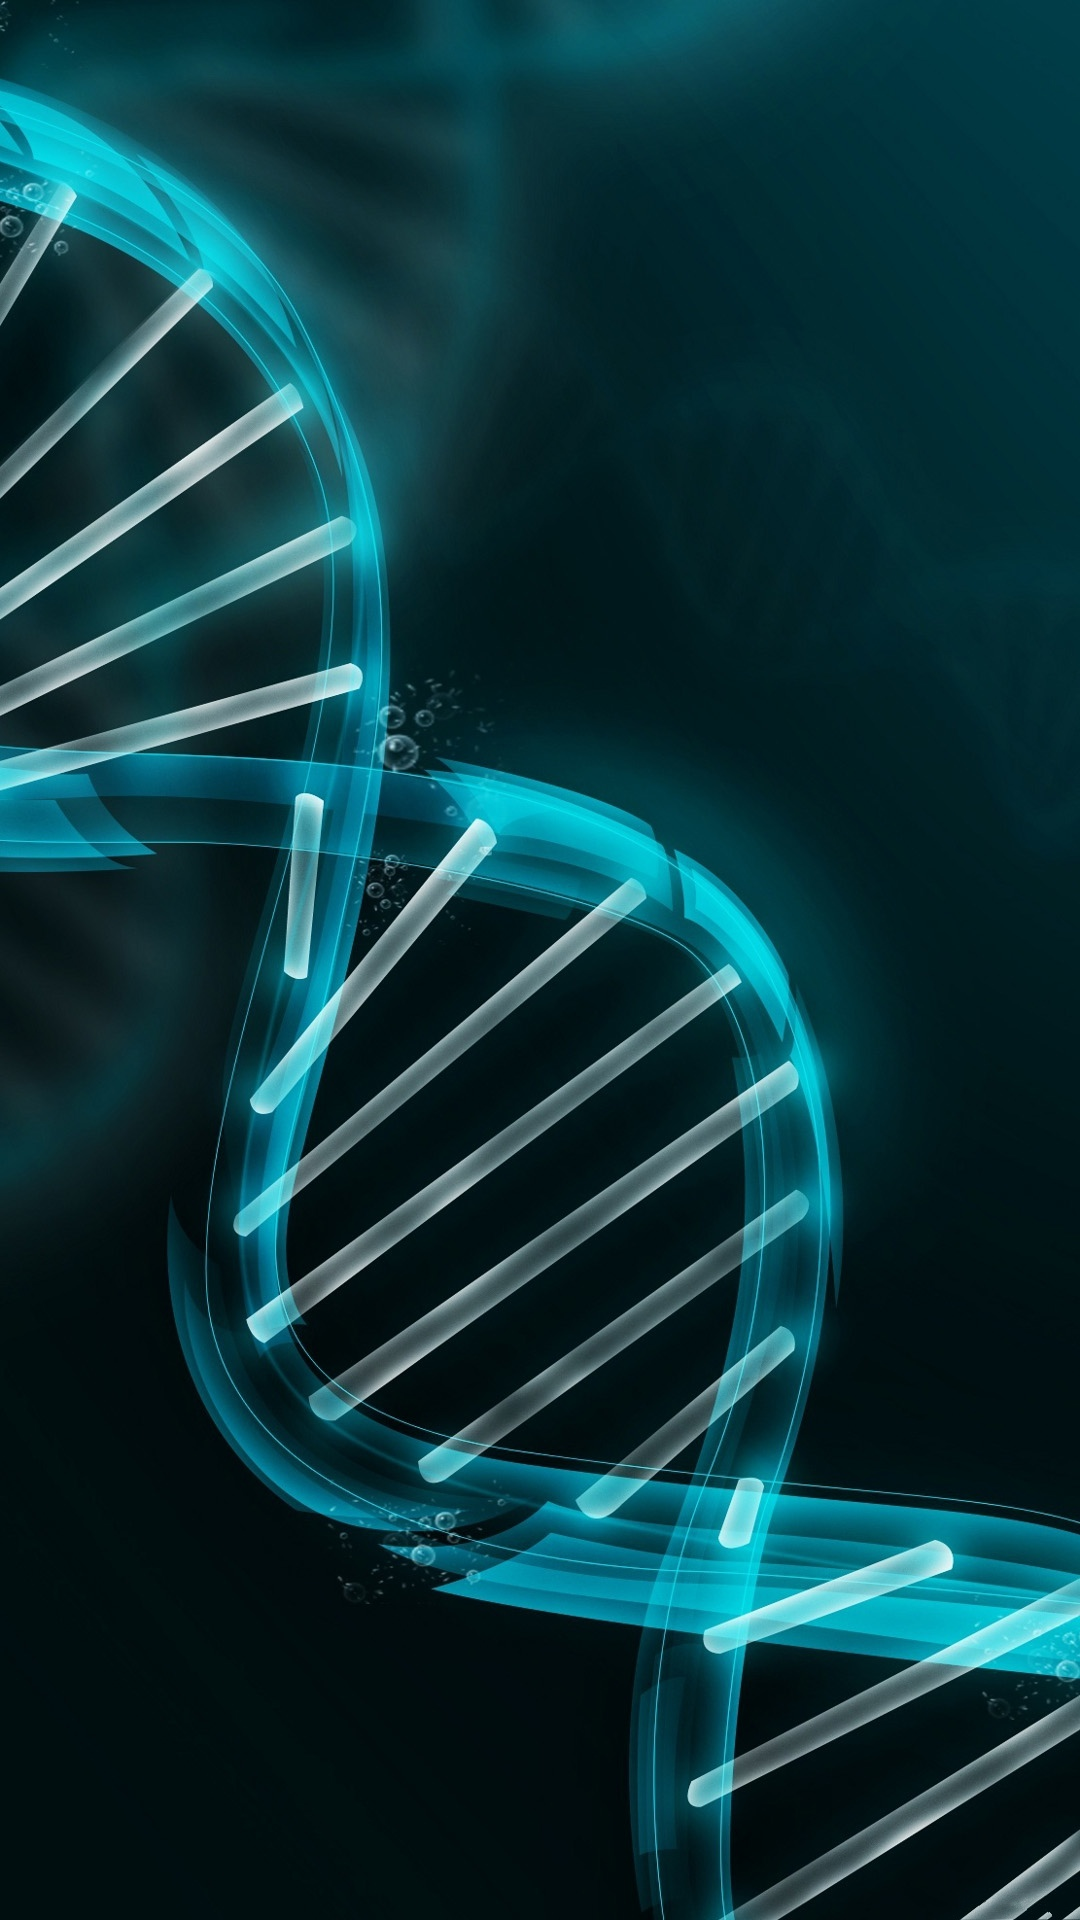 3D DNA illustration   Best htc one wallpapers 1080x1920